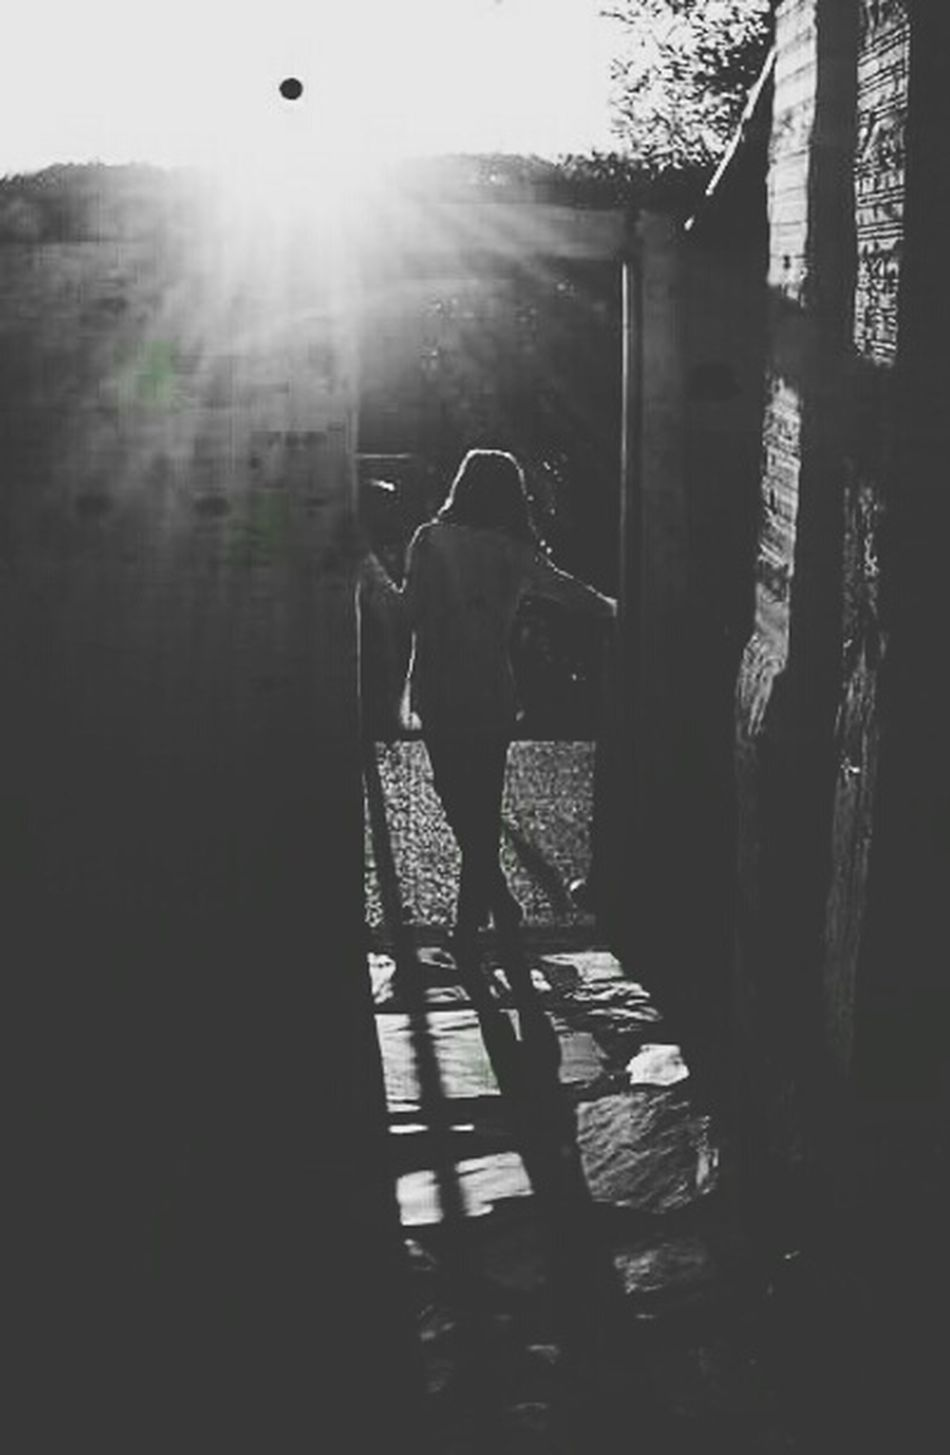 Shadow Shadows Shadows & Lights Shadows & Light Shadow And Light Shadow Photography Black And White Photography Hot Days Tranquility Light And Shadow Light In Doorway Evening Sun Evening Light Black Sun Beautiful Day Girl In Doorway Girl Portugal Tranquil Scene Doorway Into The Sun Into The Garden Doorway Lights Cobbles Long Shadows